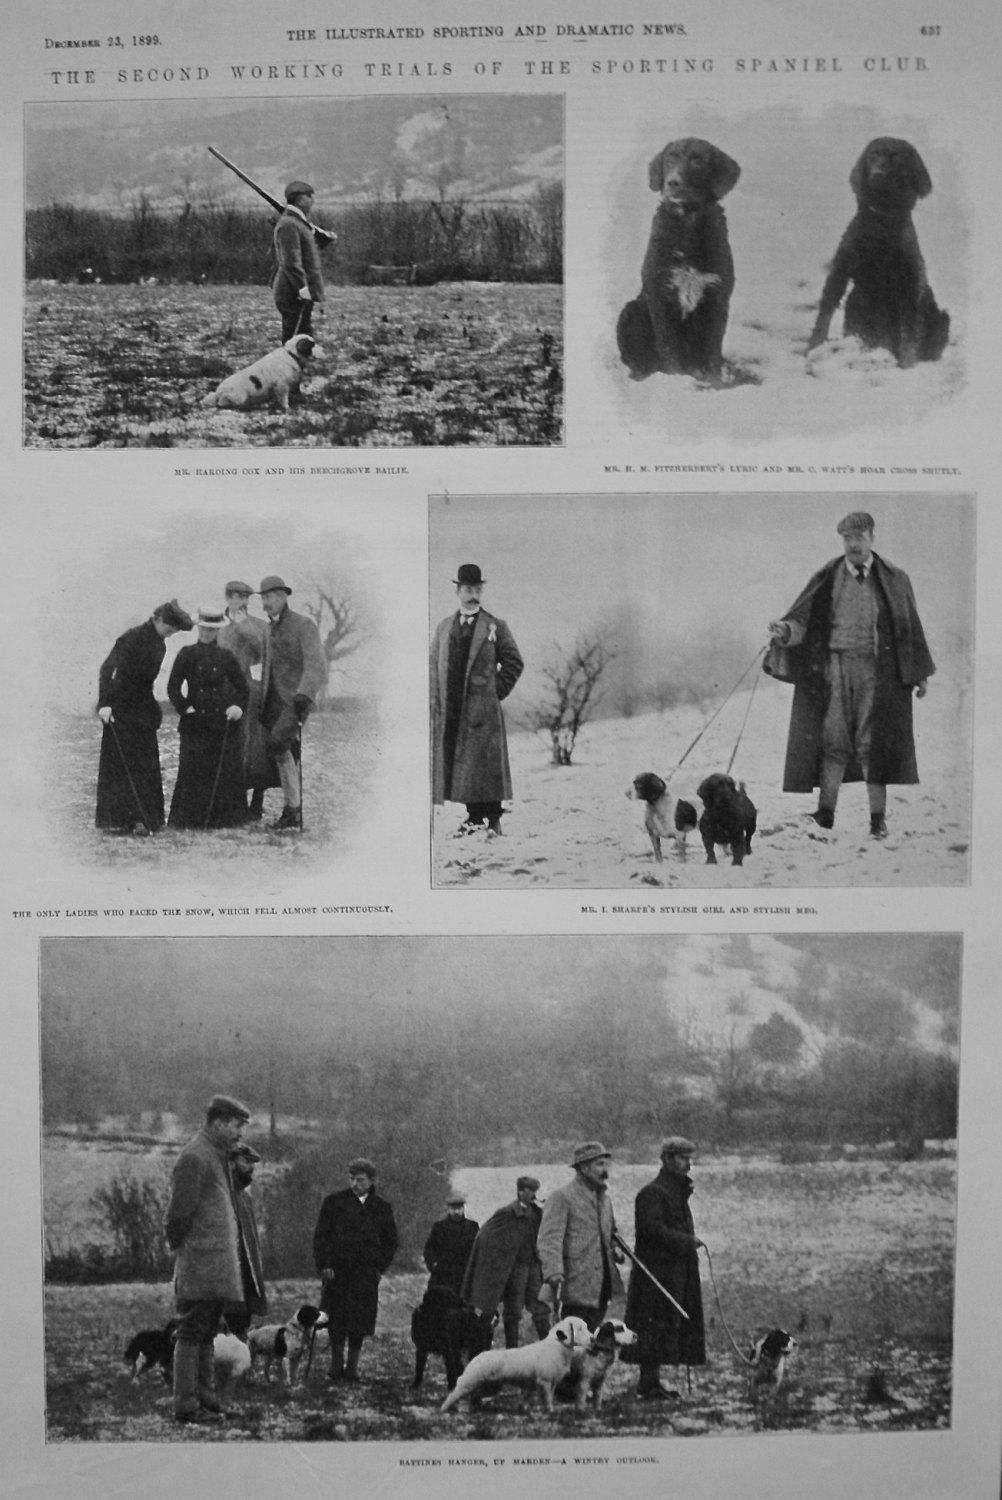 Second Working Trials of the Sporting Spaniel Club. 1899